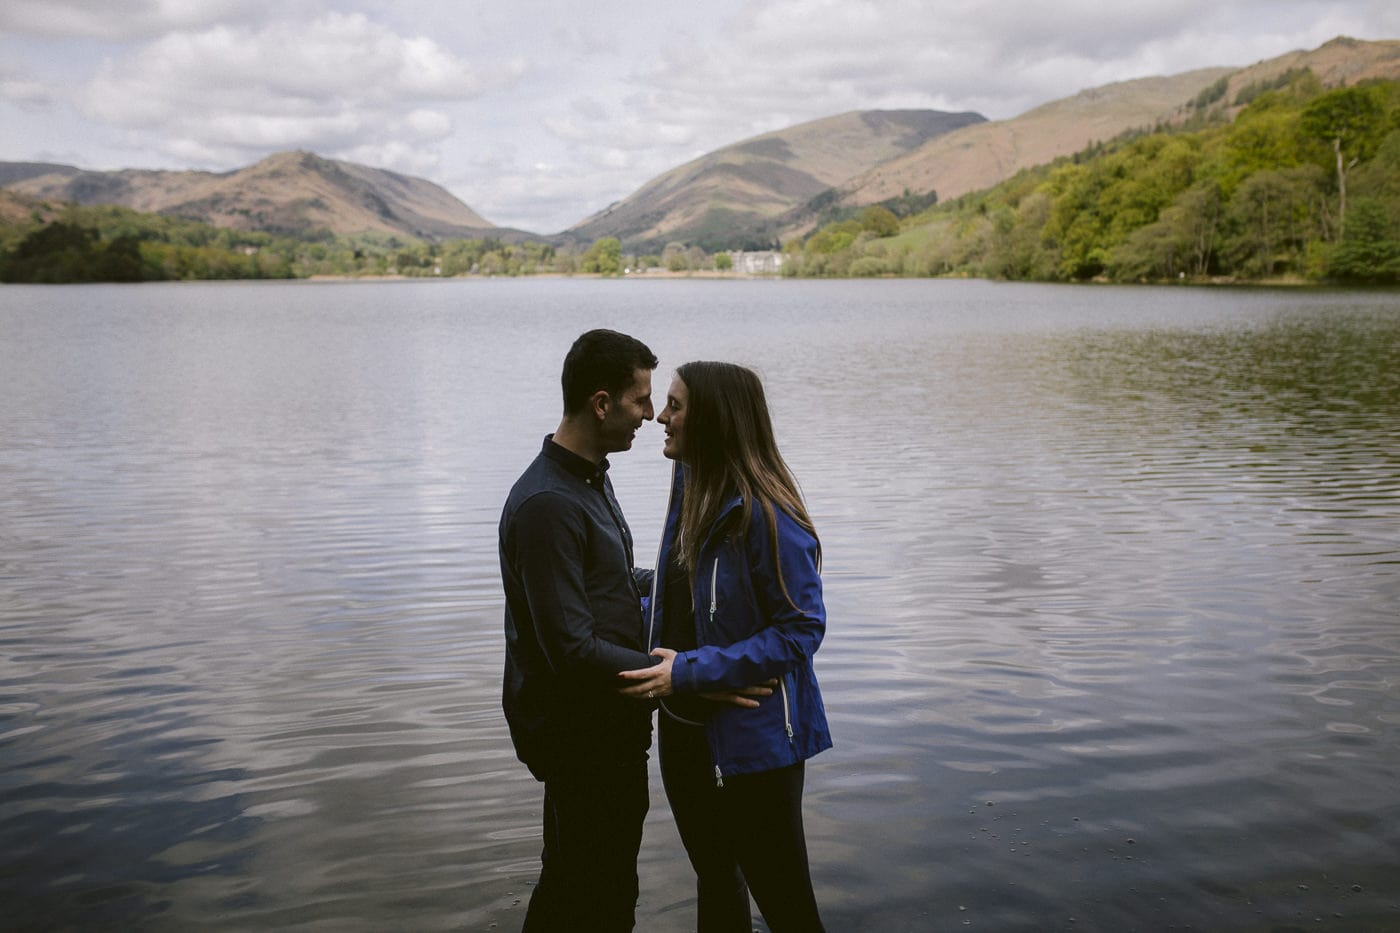 Francesca & Cyril By the Lake Proposal Portrait Shot